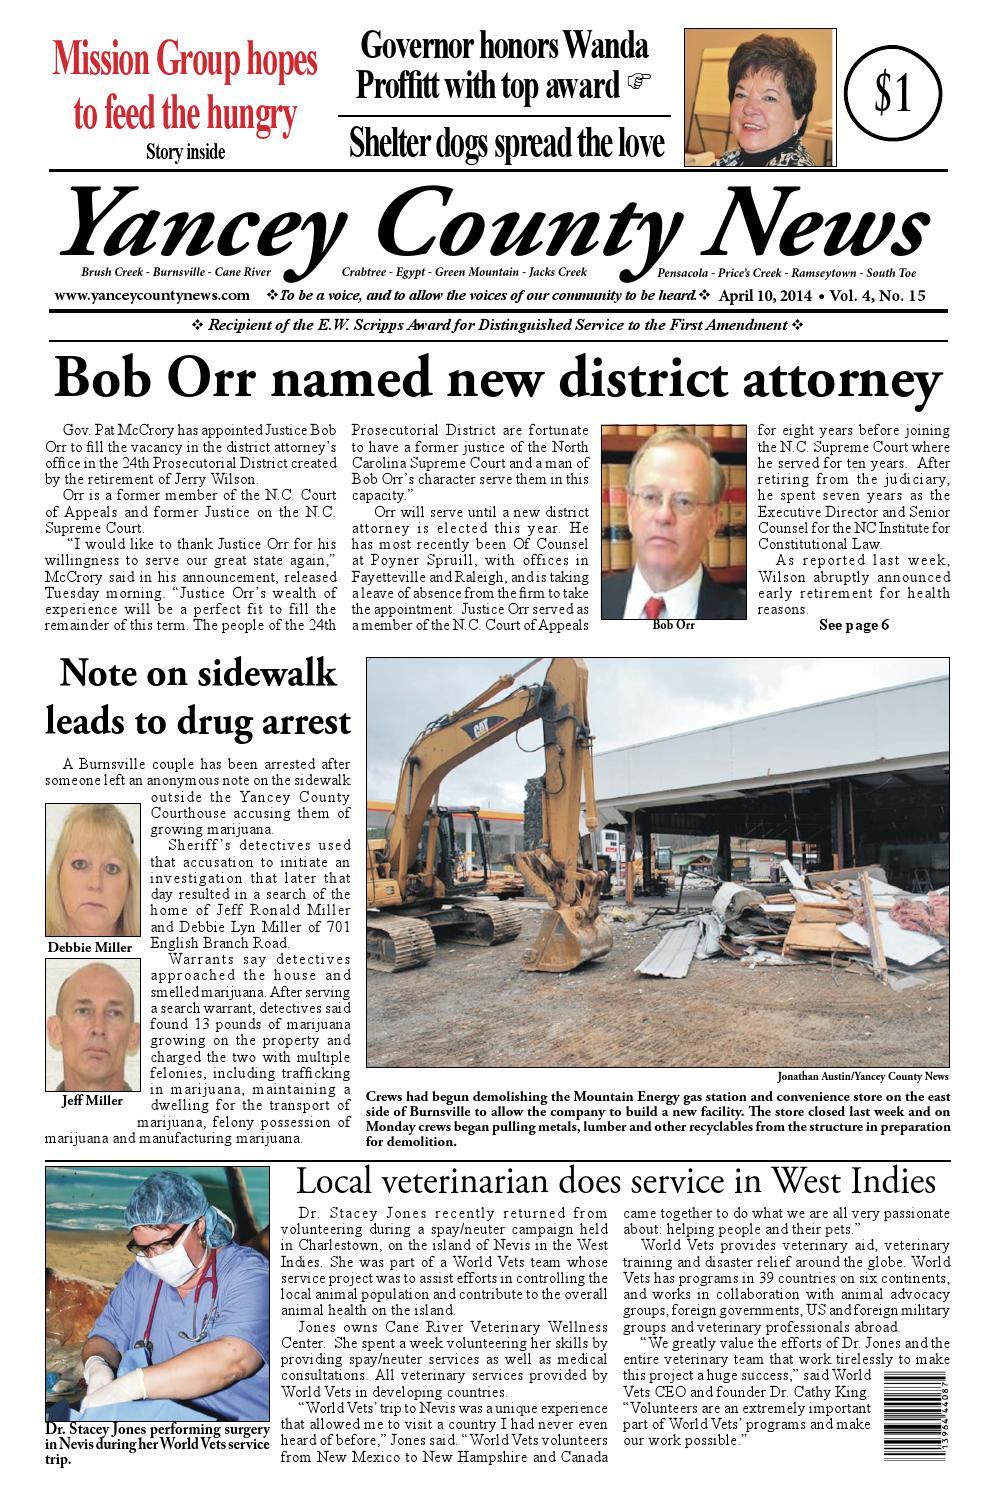 Yancey County News edition of April 10, 2014 by Yancey County News